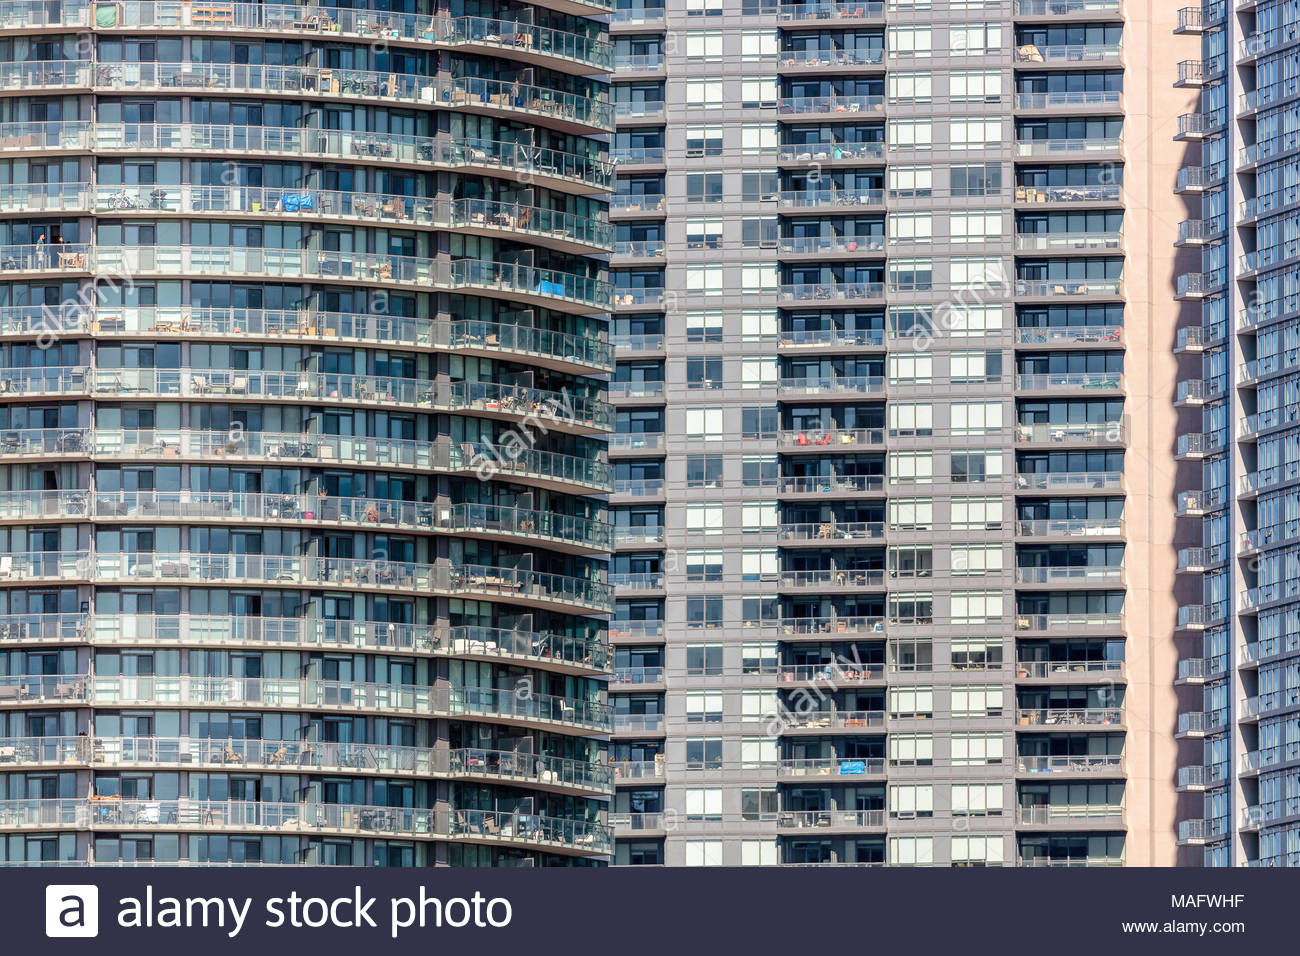 Condominium apartments a high-rise high density condo tower block development in Toronto Ontario Canada - Stock Image